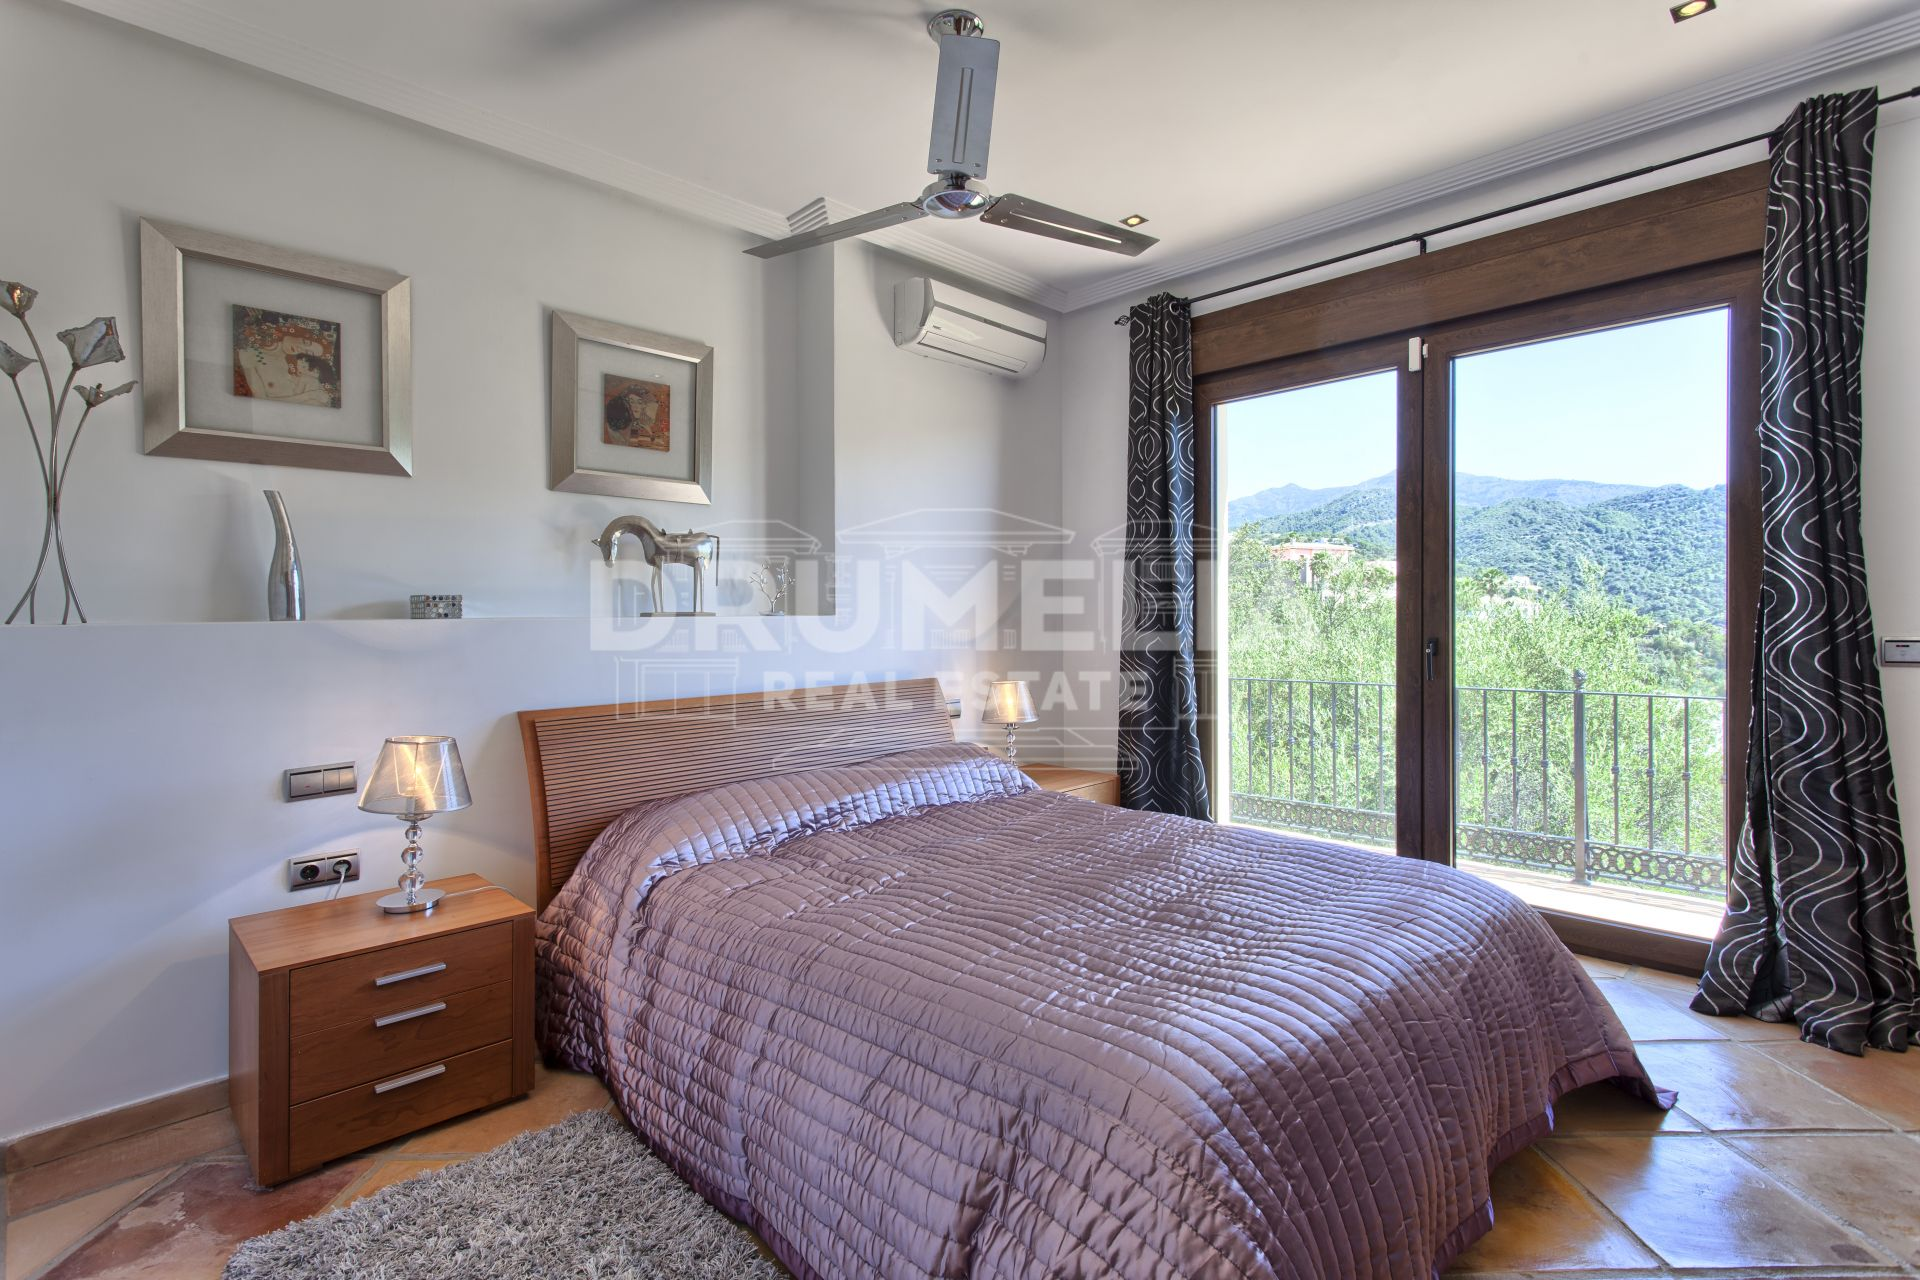 Benahavis, Delightful Villa in Monte Mayor, Benahavis